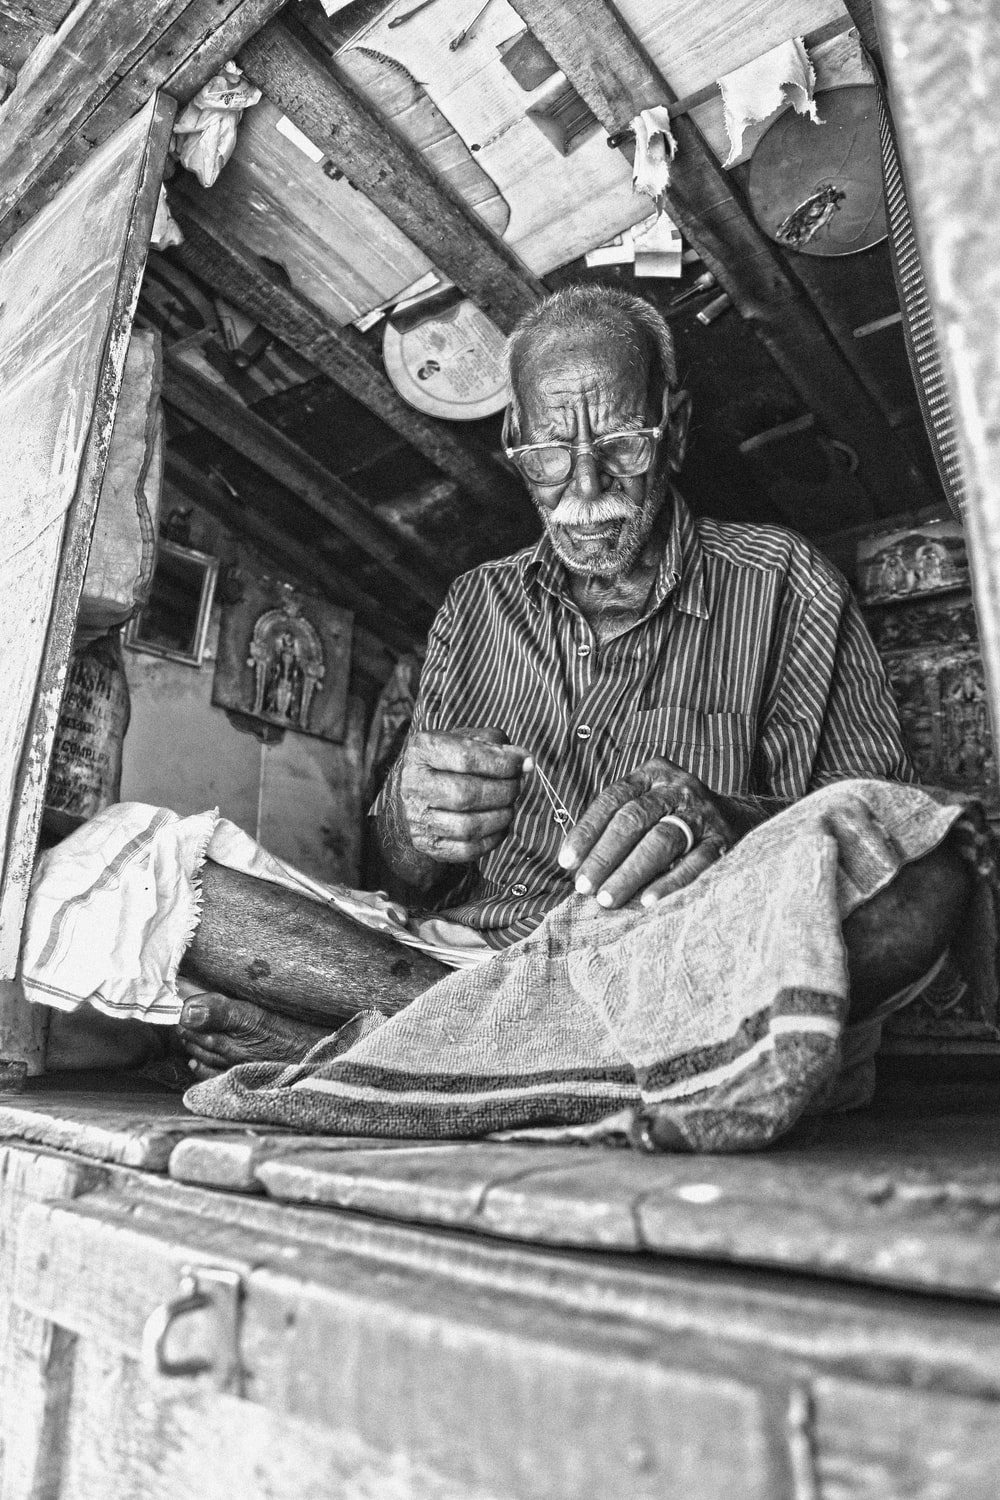 grayscale photo of man sewing textile while sitting on floor